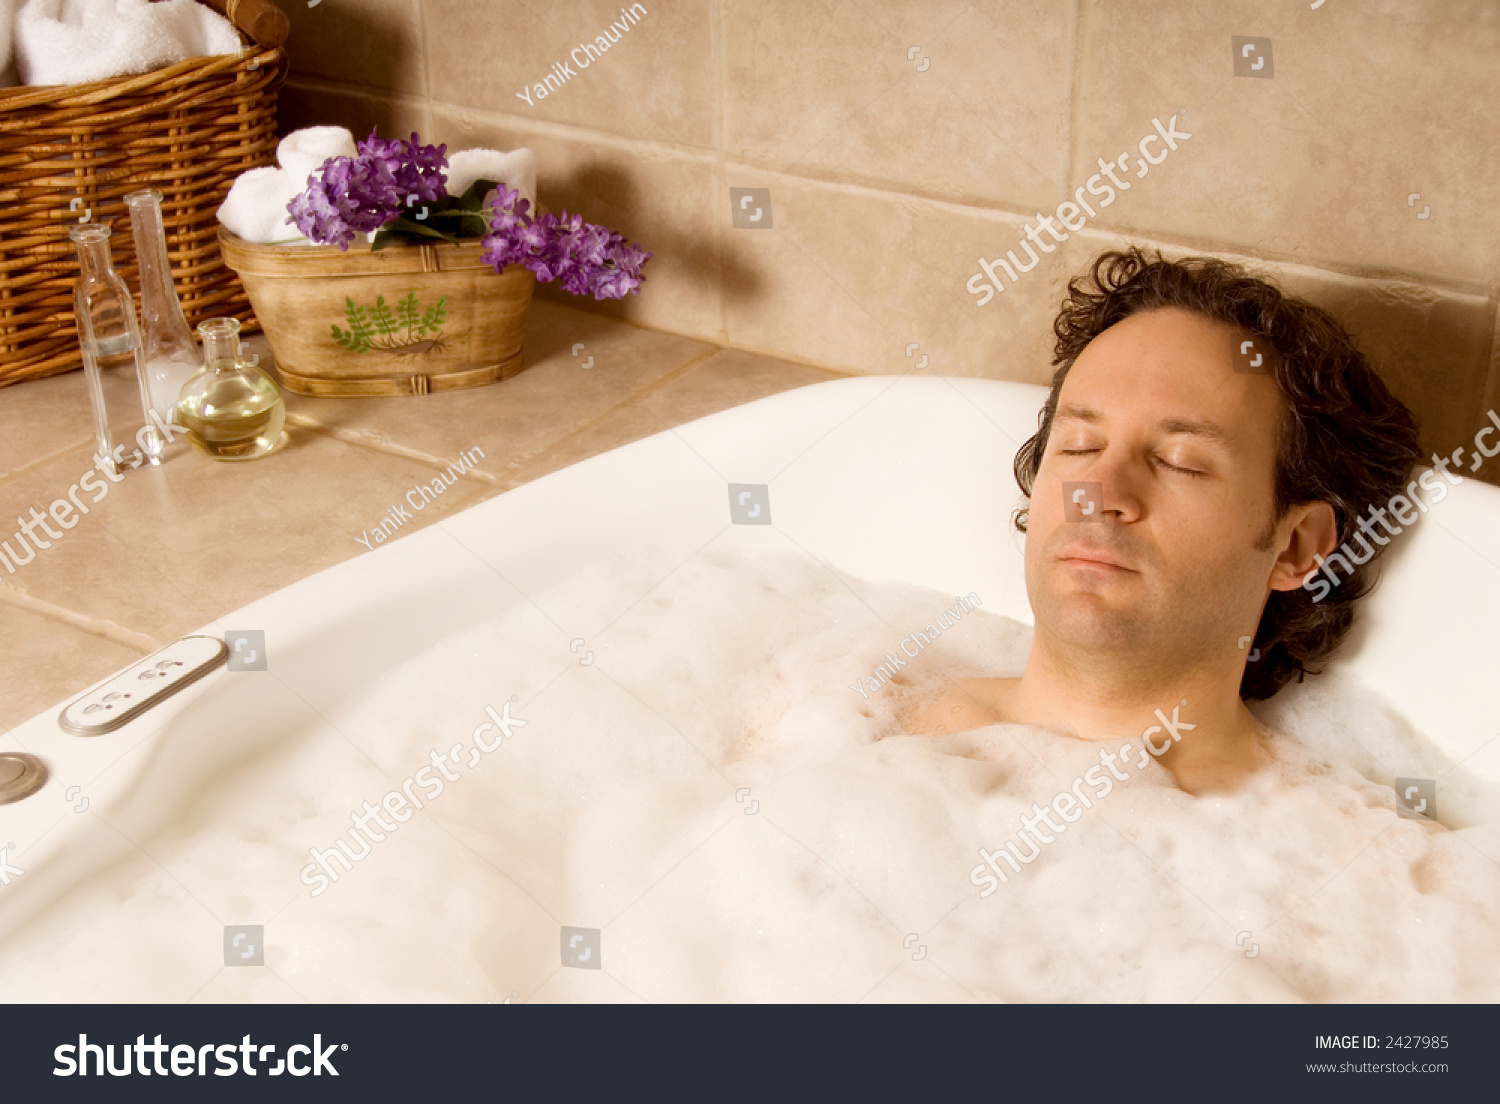 Man Client Getting Bubble Bath Spa Stock Photo (Download Now ...